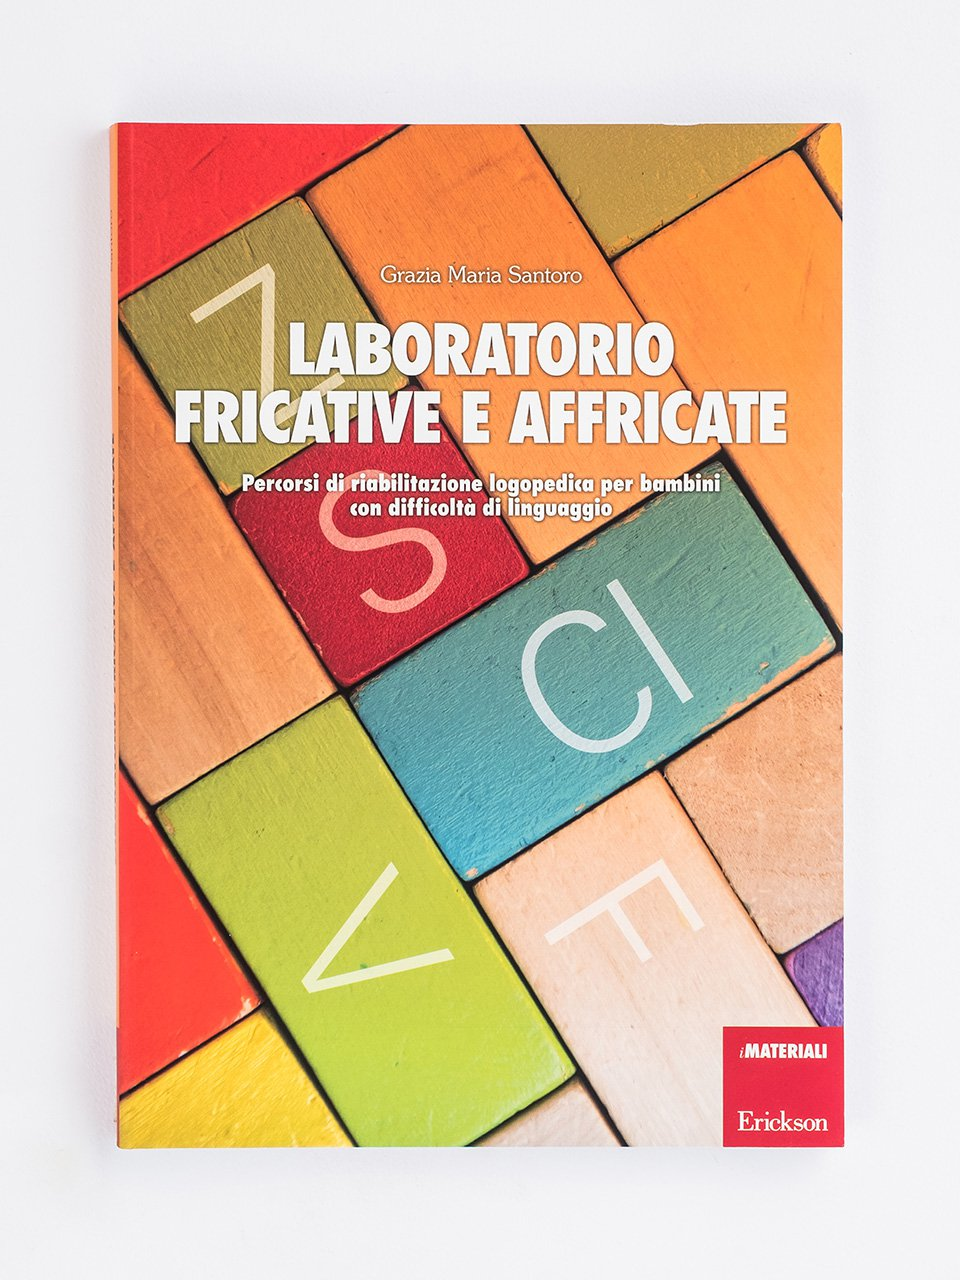 Laboratorio fricative e affricate - Le coppie minime - Volume 2 - Libri - App e software - Erickson